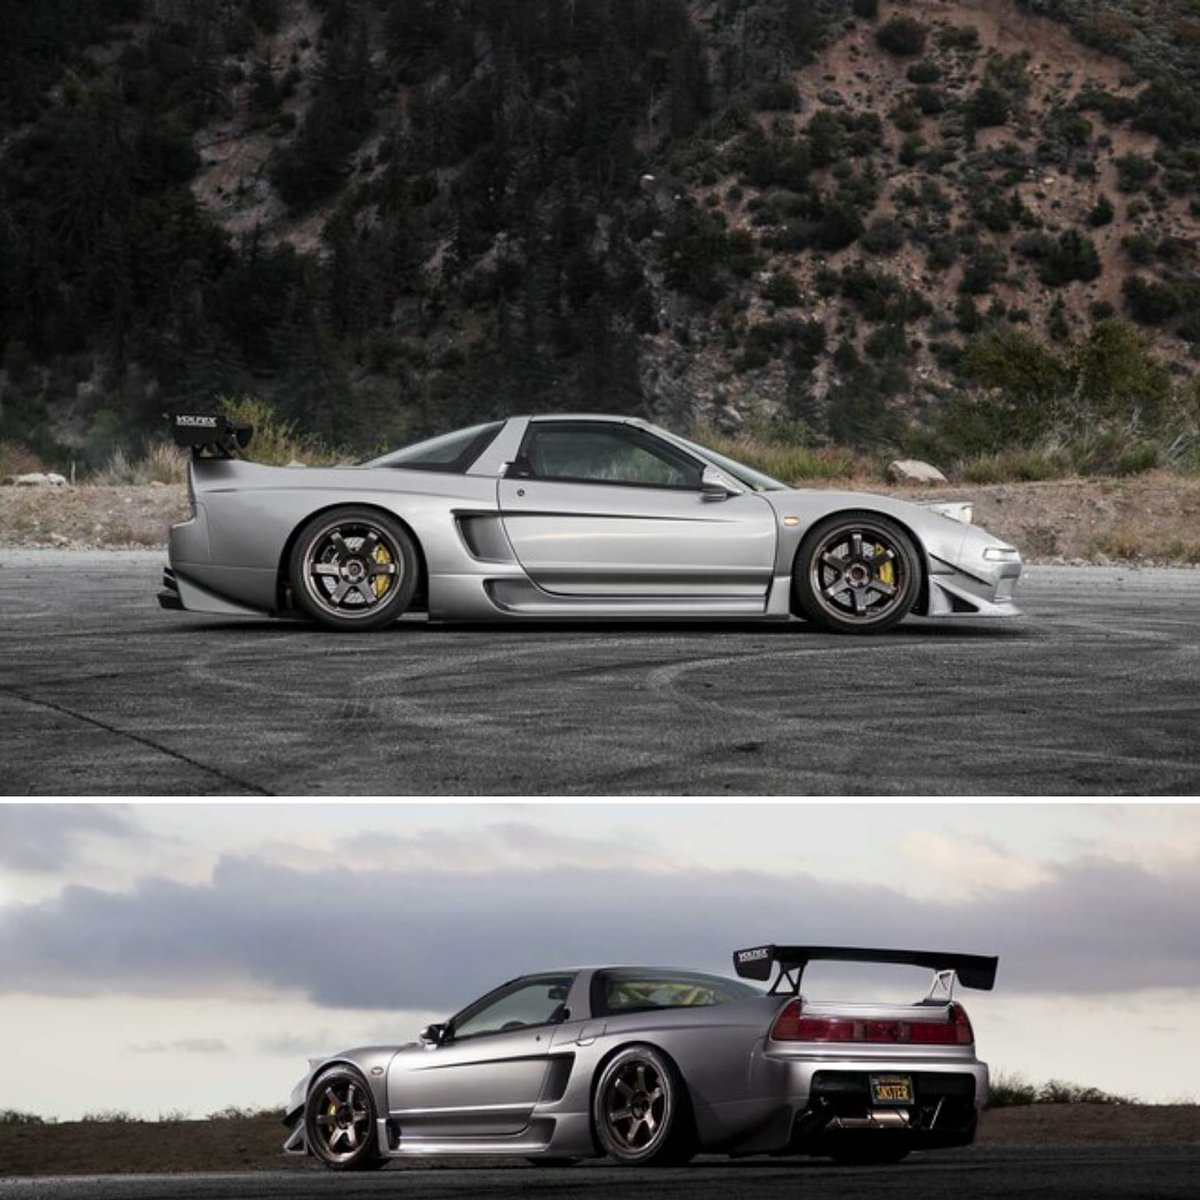 """The 2001 Acura NSX (NA2) that's made an appearance in Travis Scott's JACKBOYS and Shek Wes's music video """"Gang Gang""""  owner IG @snisternsx Feature @superstreet http://www.superstreetonline.com/features/silverstone-metallic-2001-acura-nsx-marga-hills/… #Acura #NSX #na2 #travusscott #jackboys #shekwes #ganggang #musicvideo #carfeaturepic.twitter.com/a8i9m5yufA"""